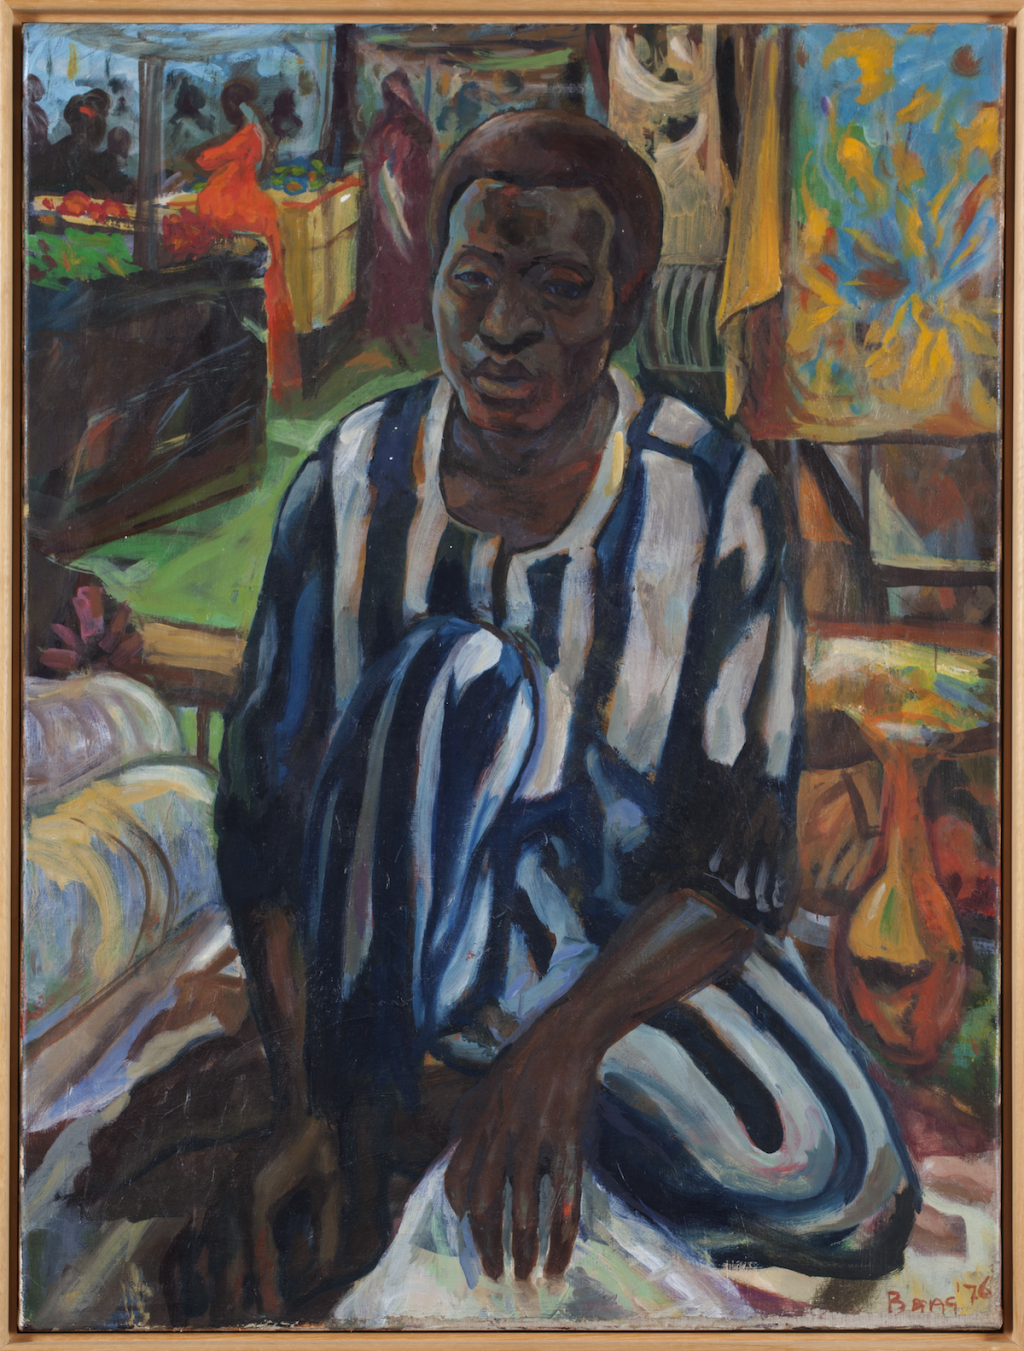 Armand Baag, The fabric dealer, 1980, oil on canvas. Collectie Stedelijk Museum Amsterdam